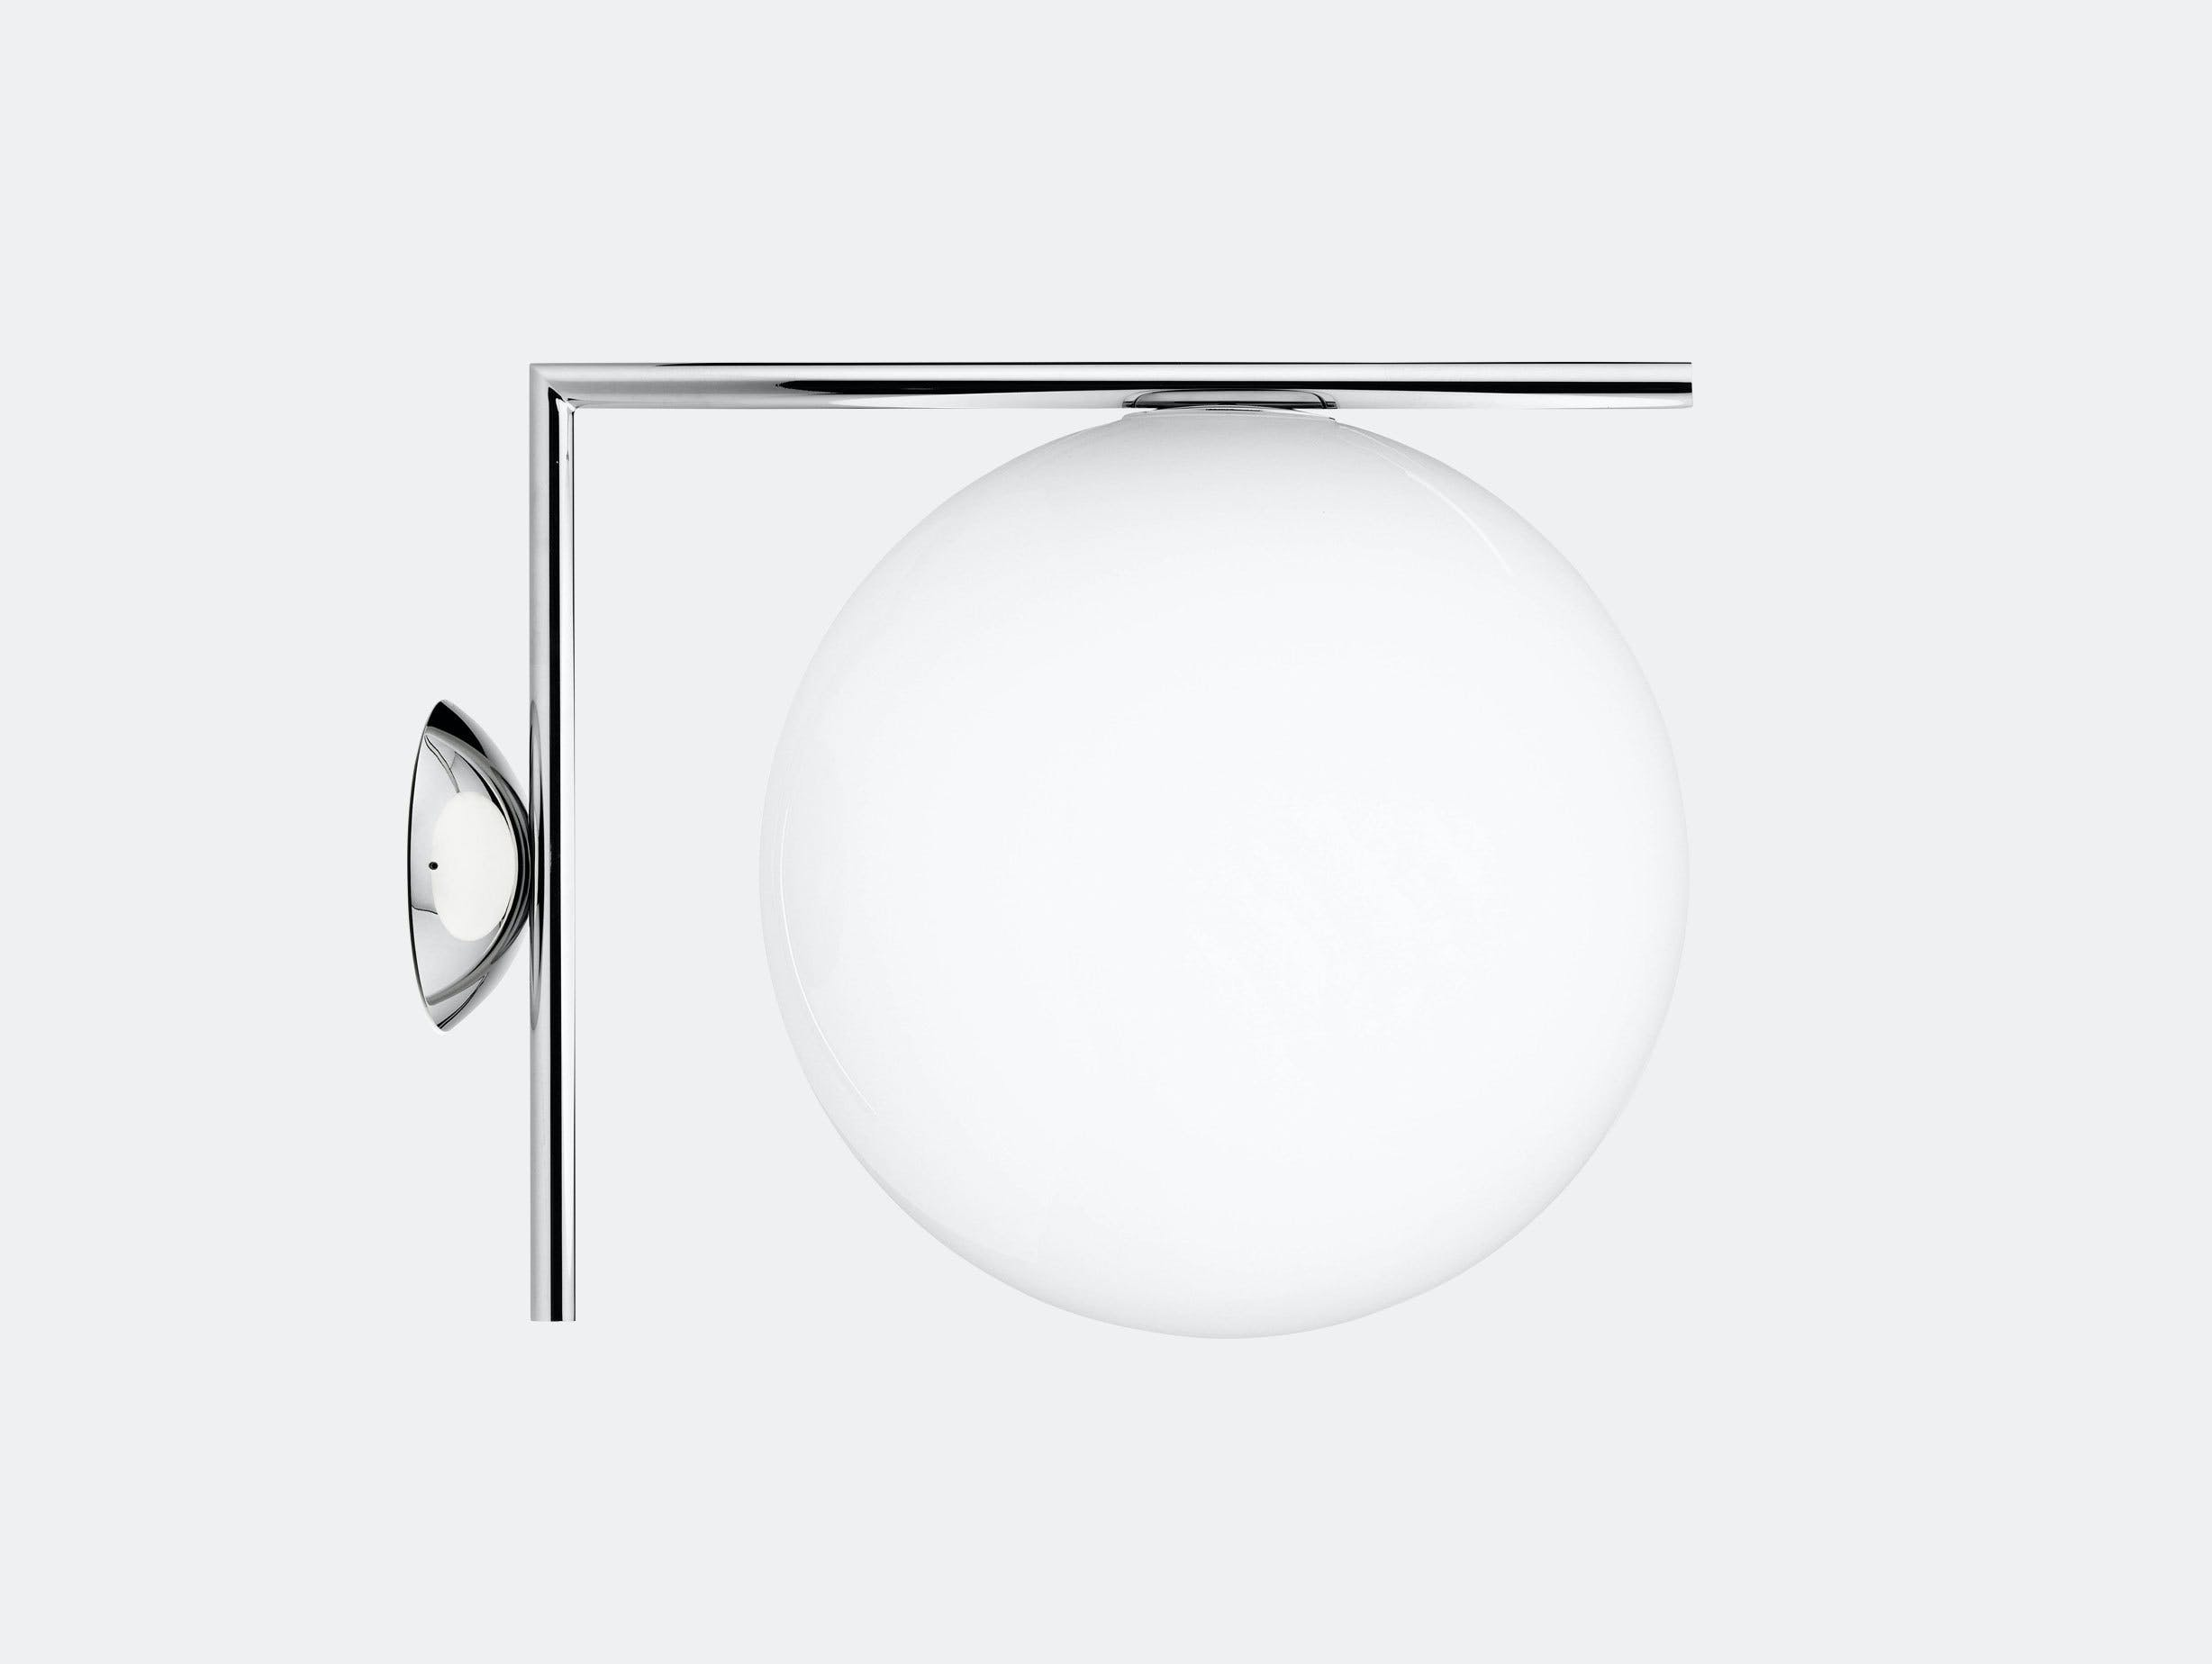 Flos Ic Ceiling Wall Light Cw2 Chrome Michael Anastassiades